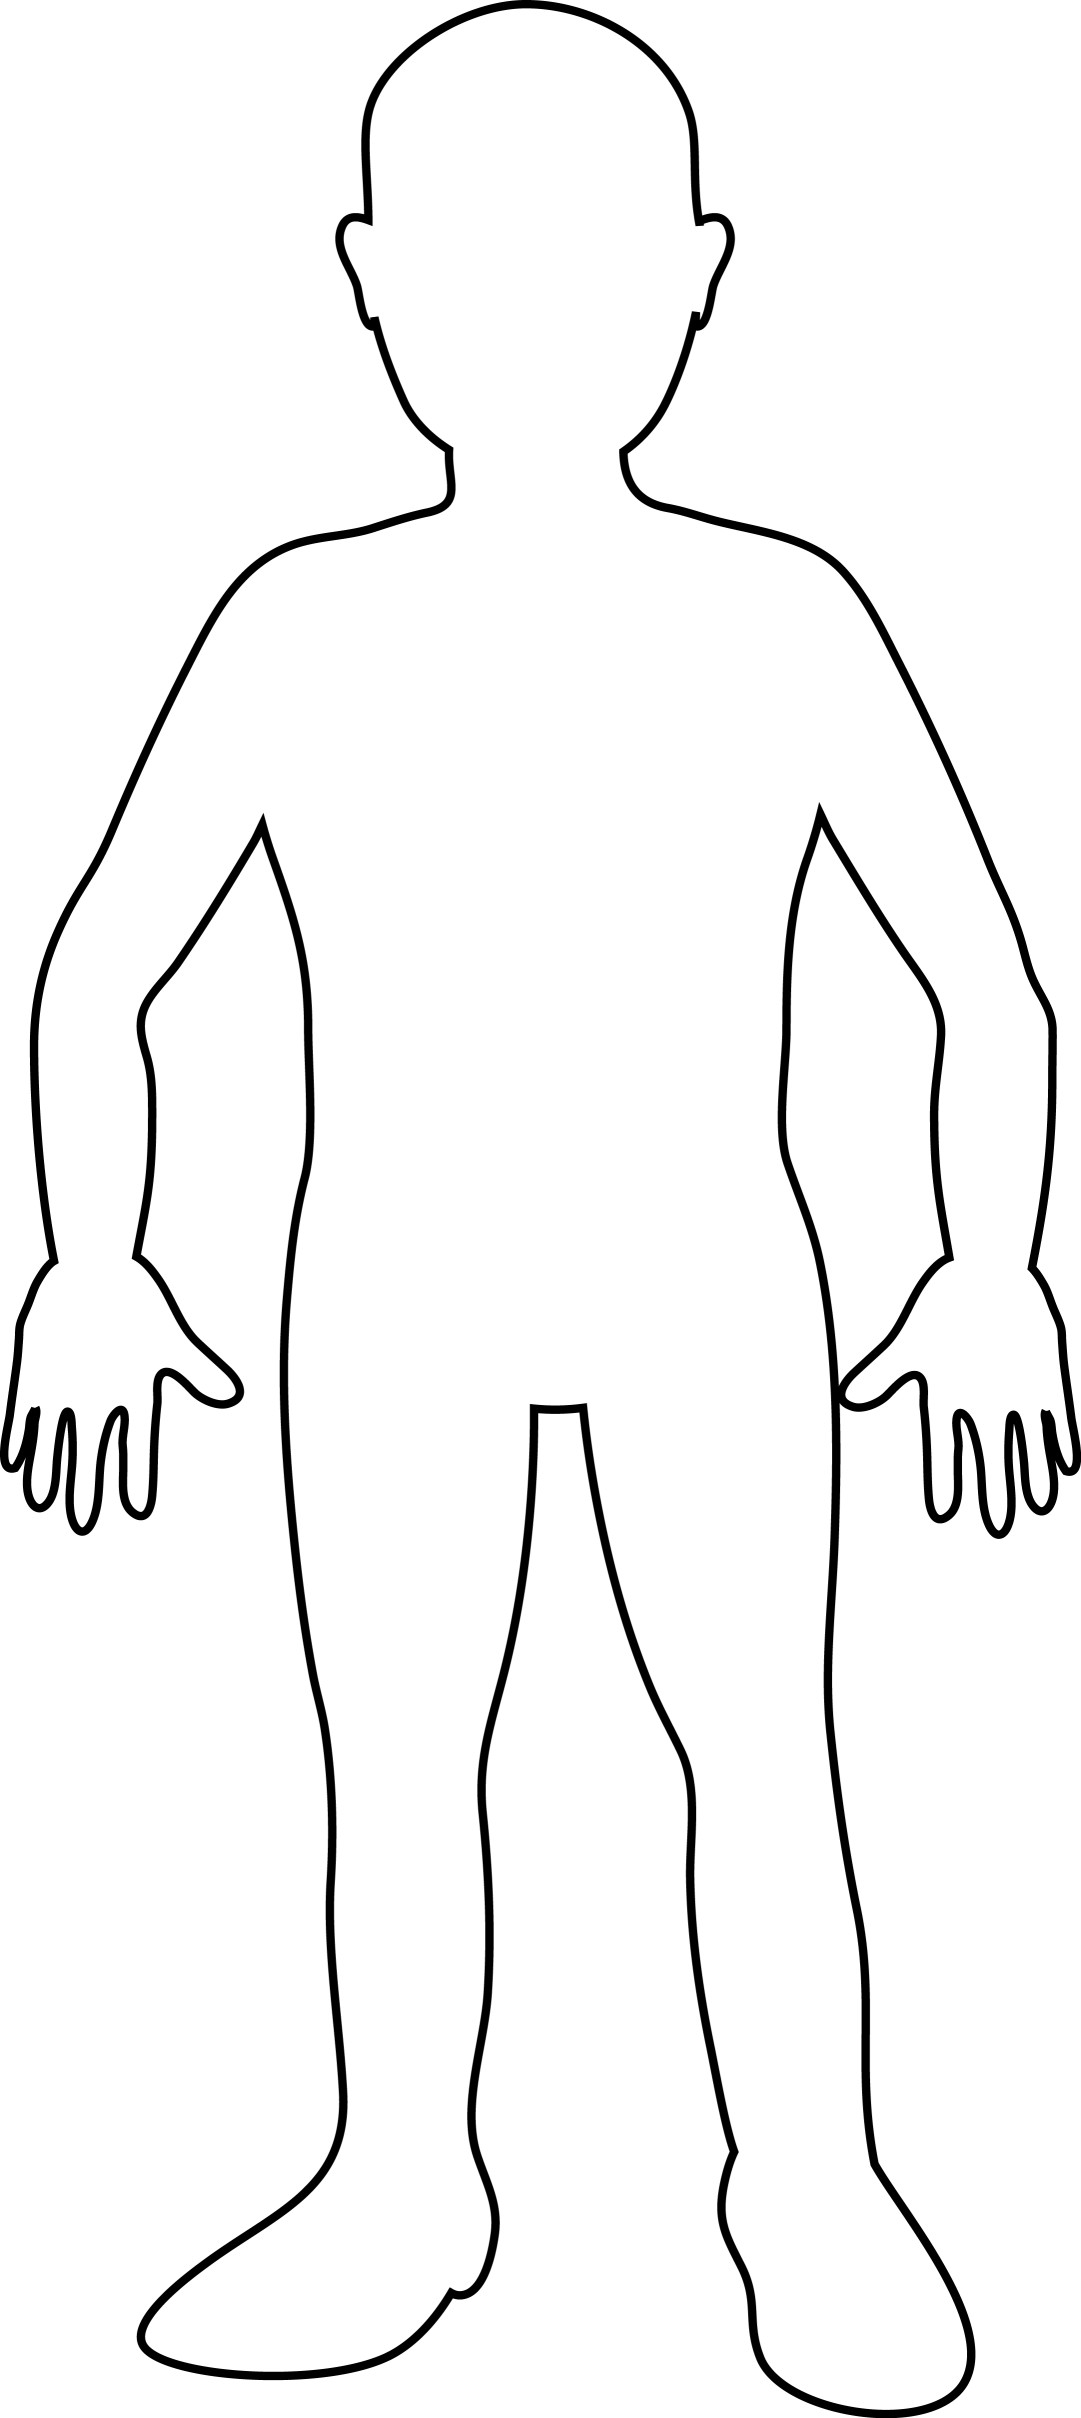 Outline Of A Man